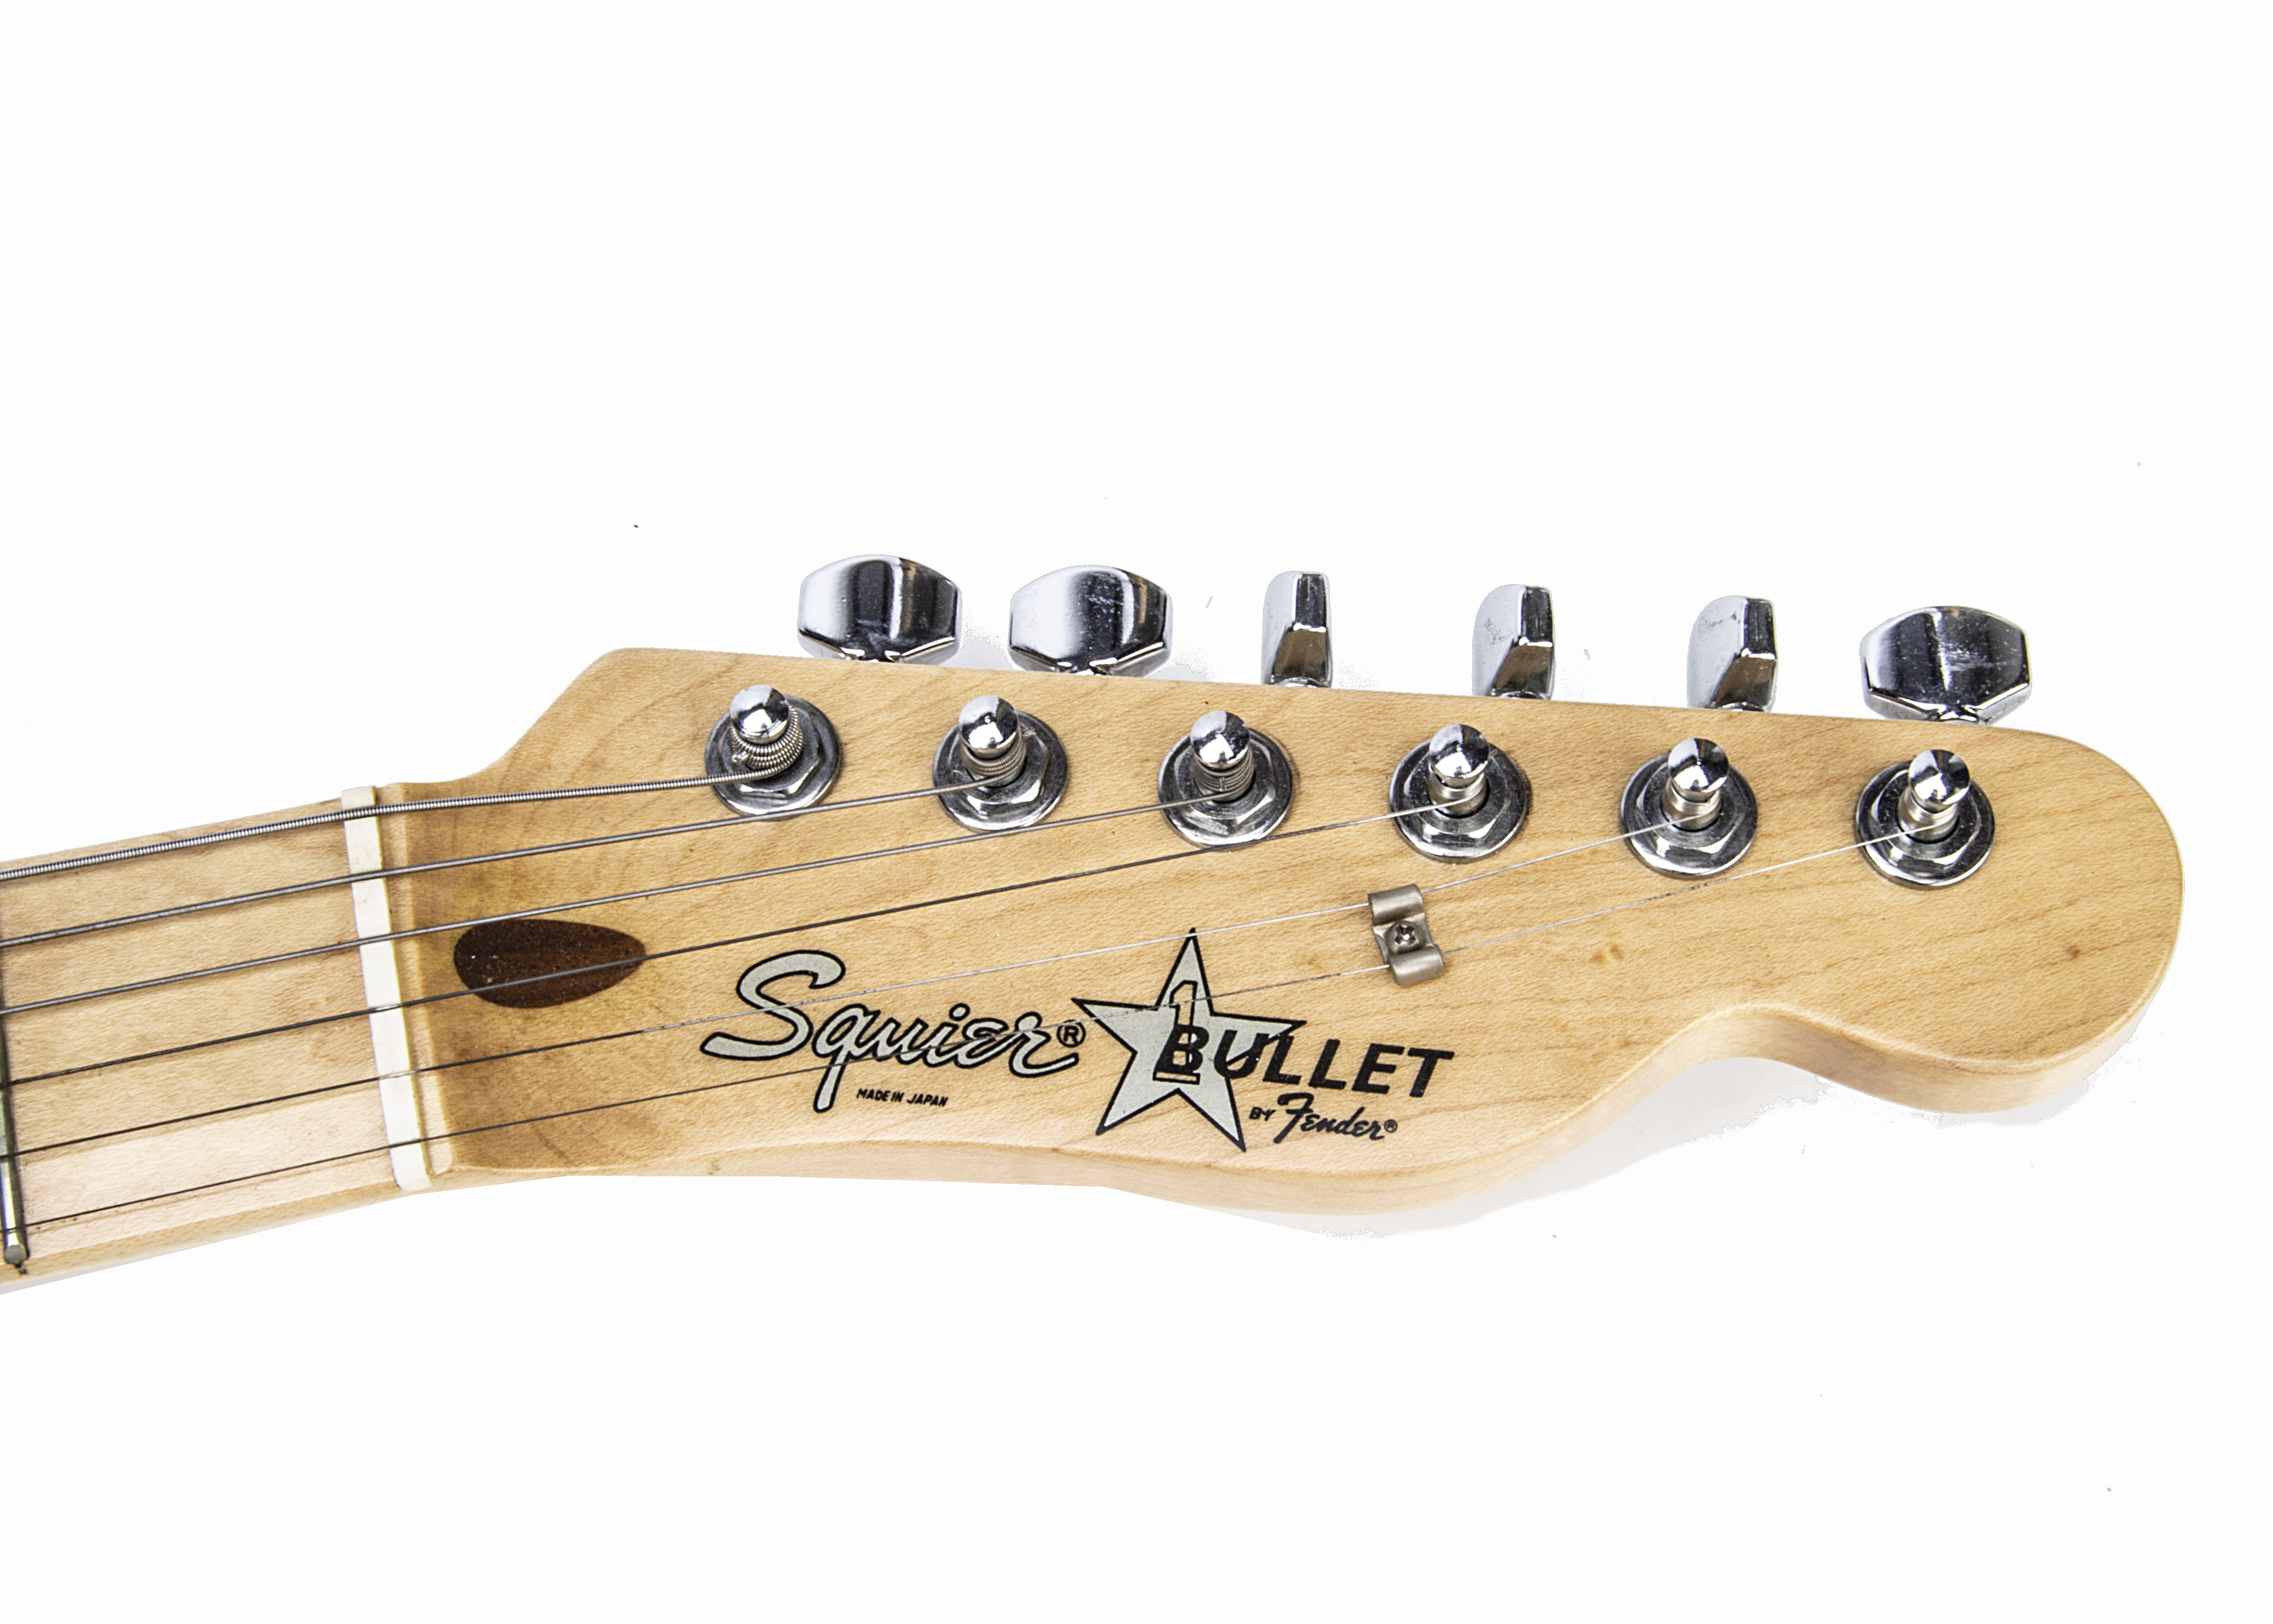 Squier Electric Guitar, a Squier 'Bullet' electric guitar by Fender, made in Japan, with strap, lead - Image 5 of 5